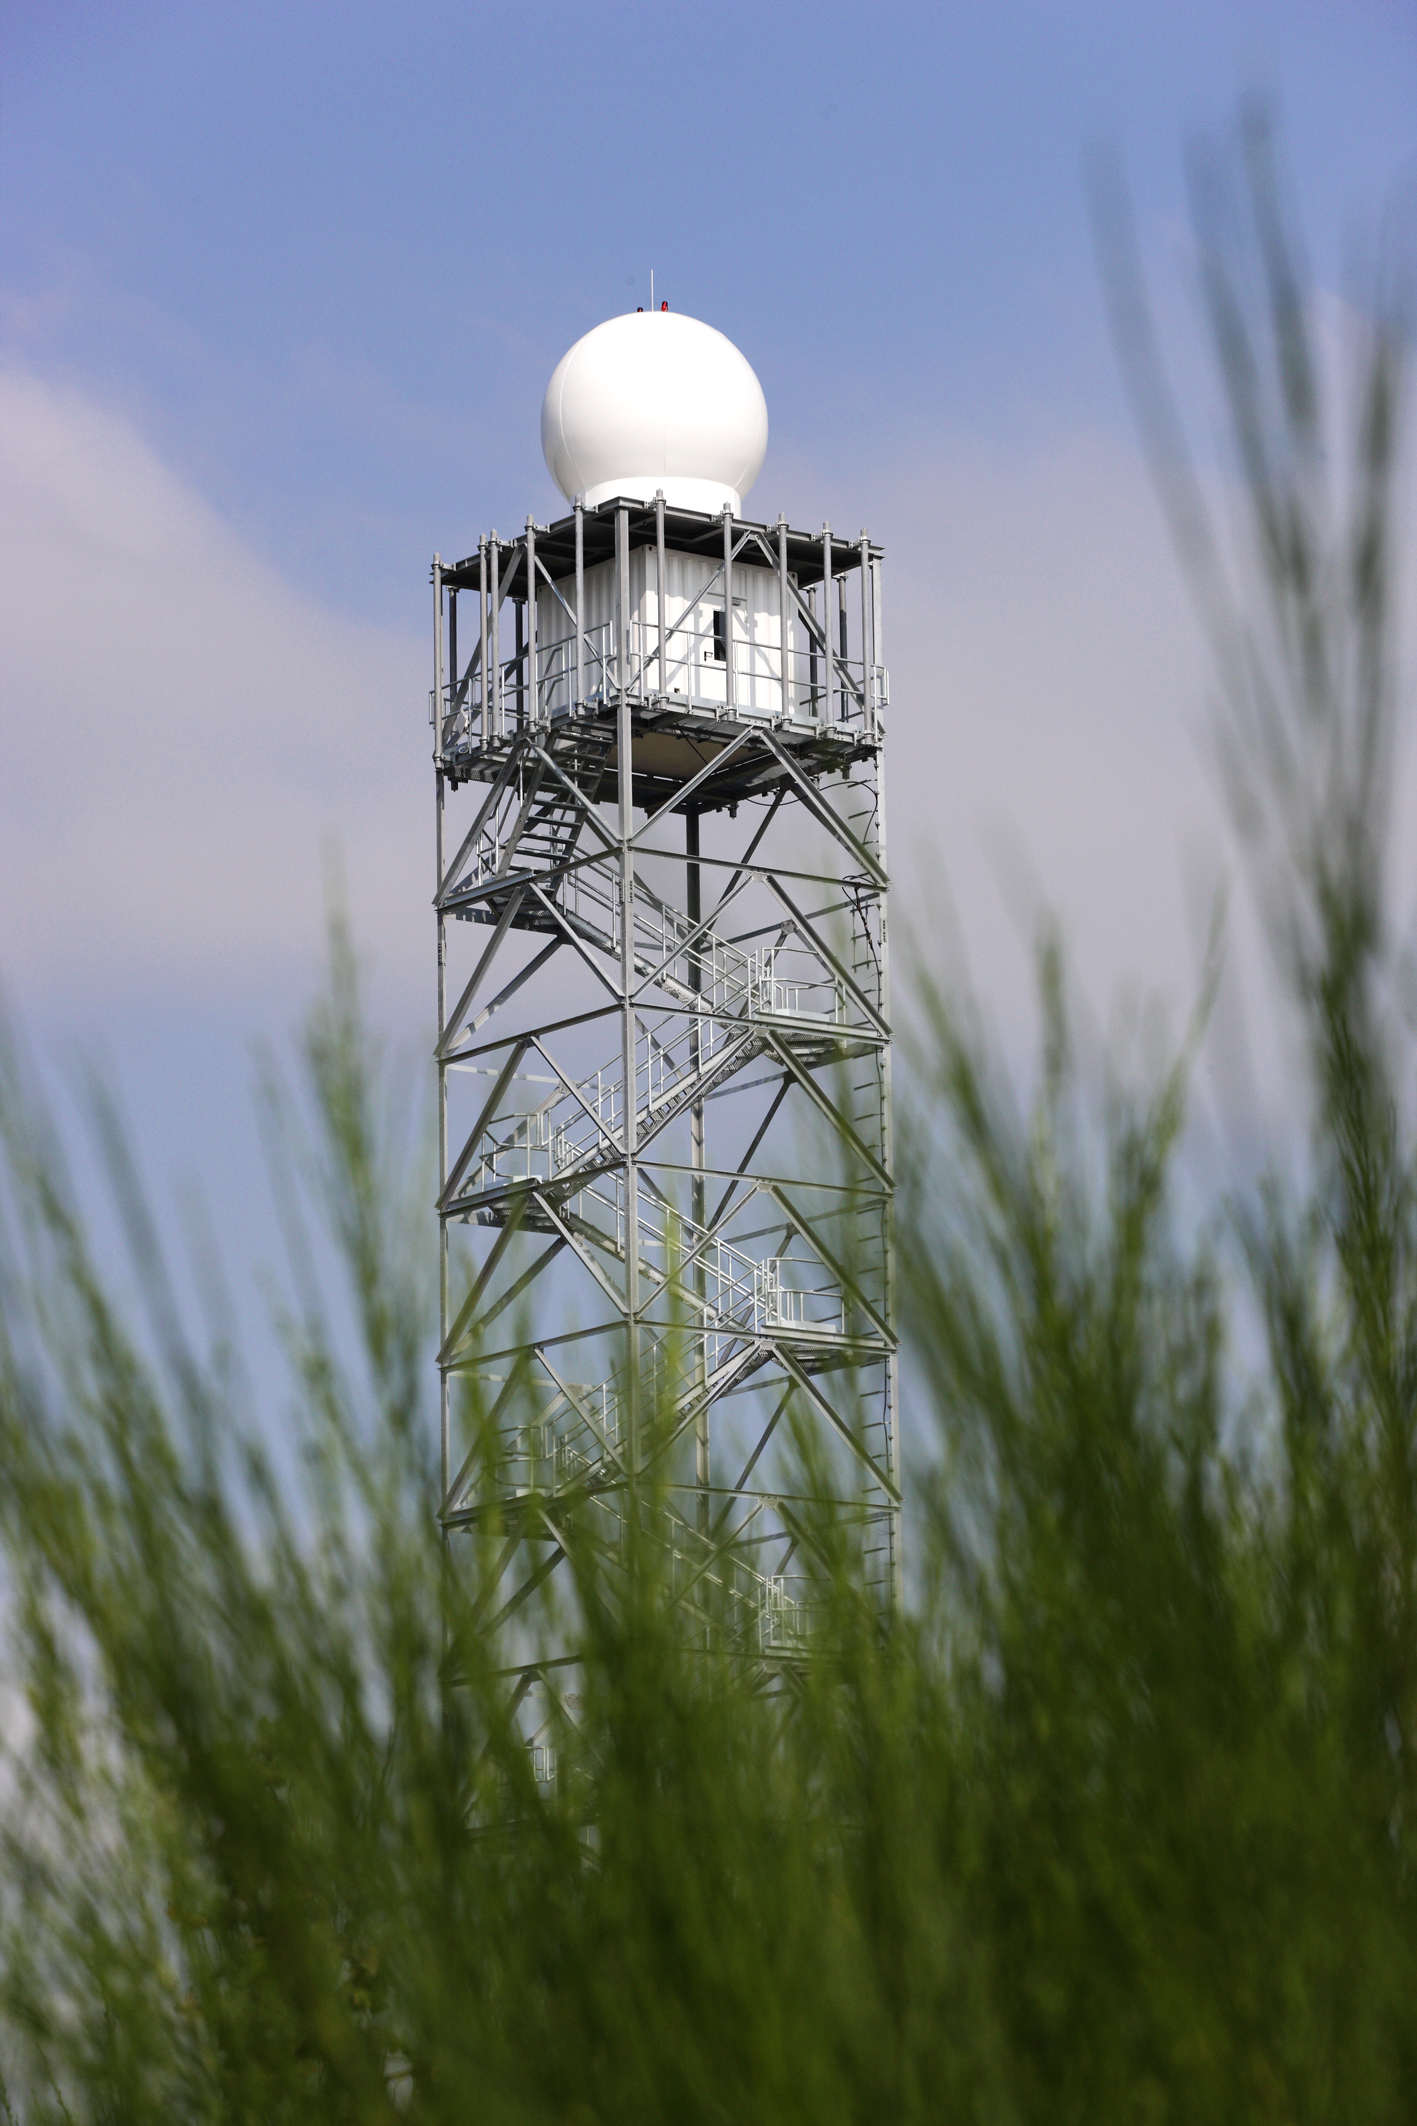 Weather radar tower at Sophienhöhe (Photo: Ralf-Uwe Limbach).